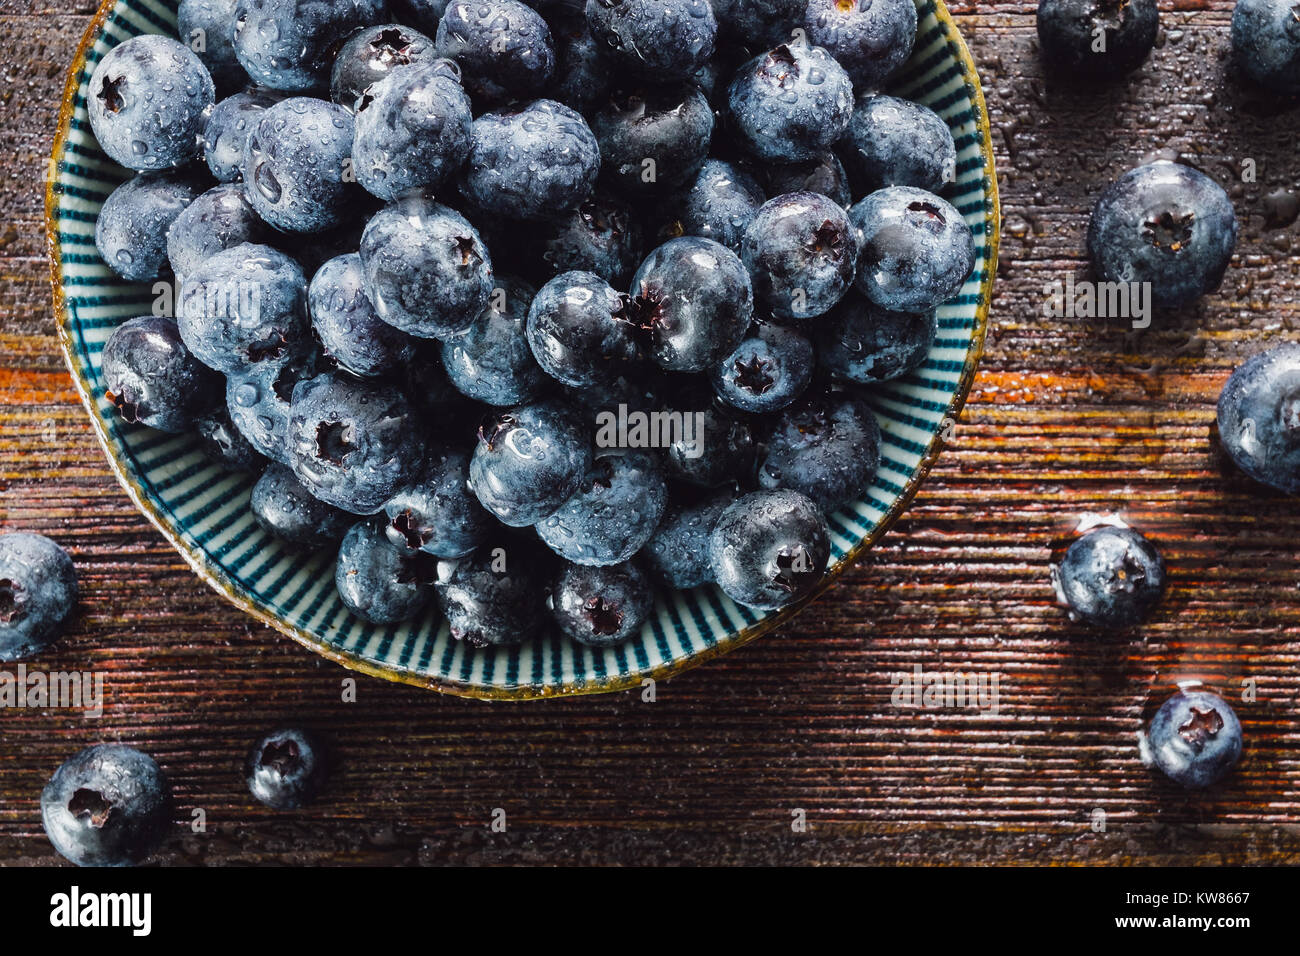 Fresh Washed Blueberries on Dark Table - Stock Image